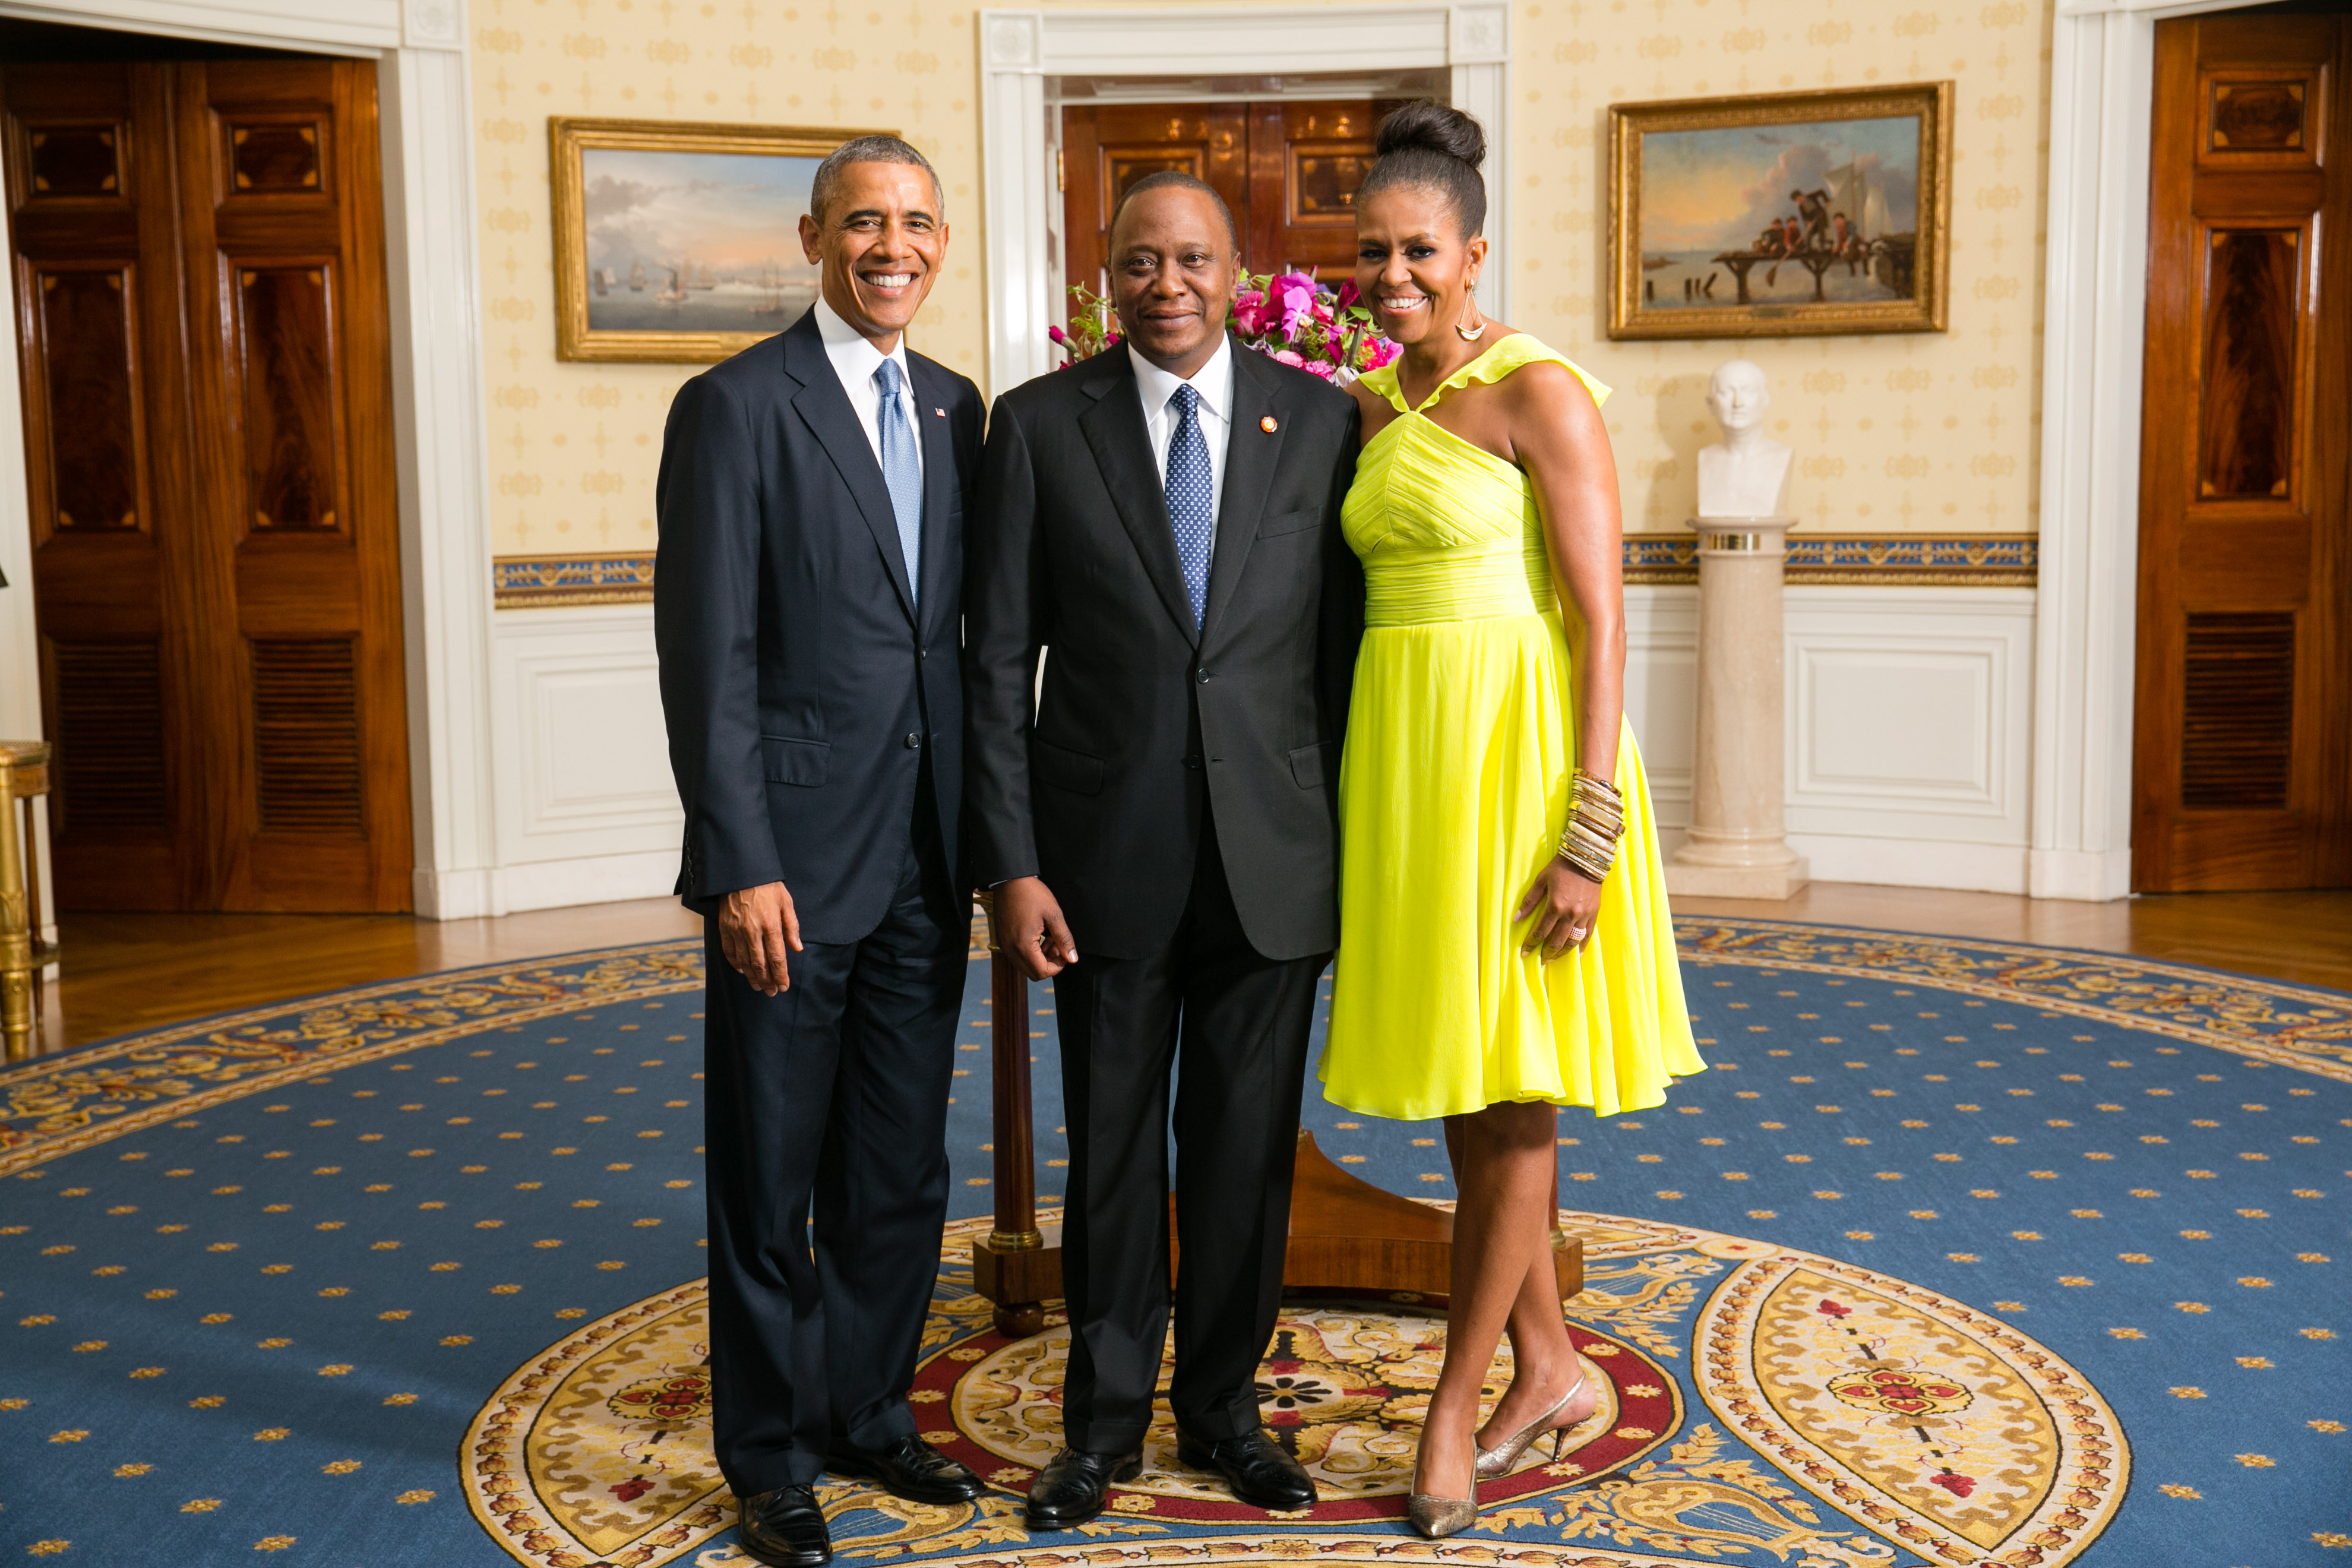 President Barack Obama and First Lady Michelle Obama greet His Excellency Uhuru Kenyatta, President of the Republic of Kenya, in the Blue Room during a U.S.-Africa Leaders Summit dinner at the White House, Aug. 5, 2014. (Official White House Photo by Amanda Lucidon)